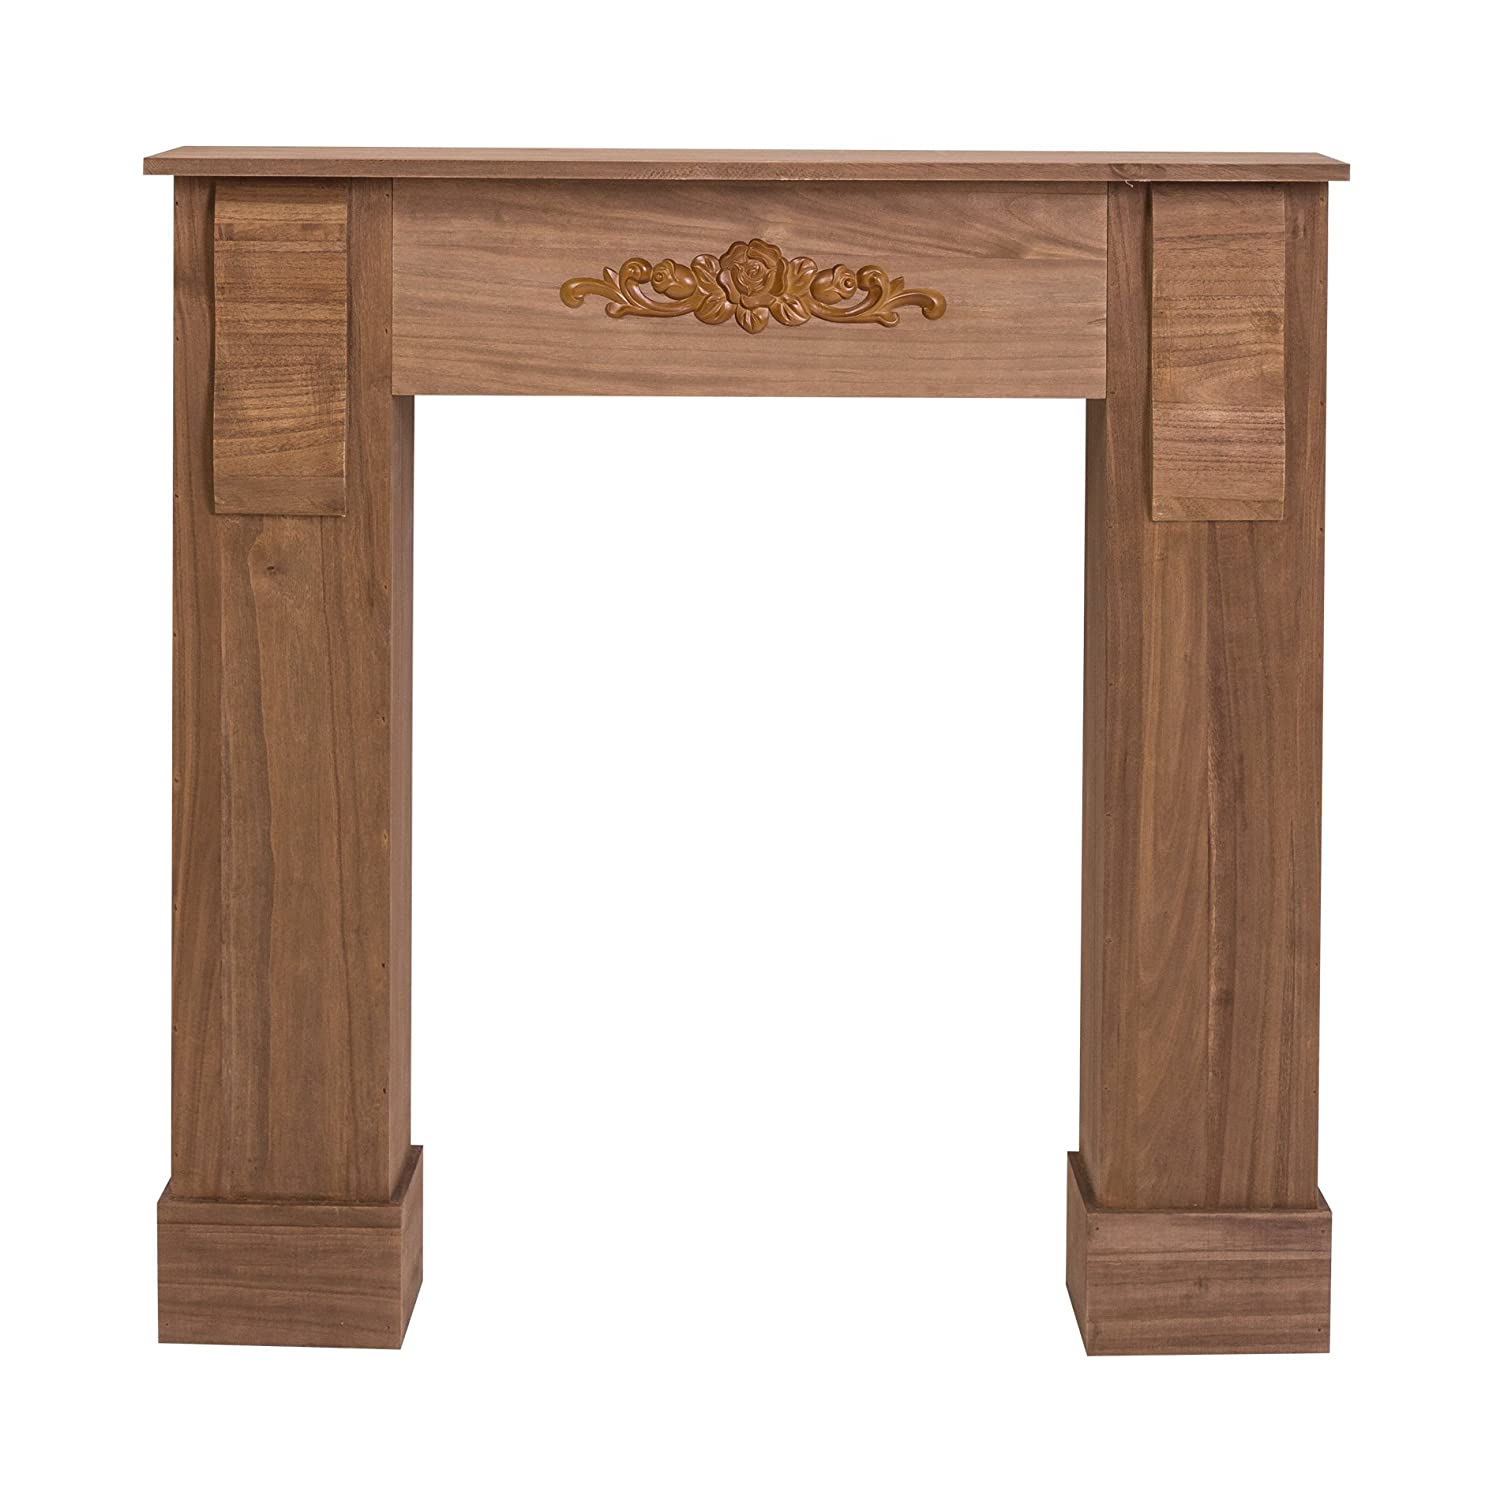 Rebecca srl Mantelpiece Surround Fire in wood brown floral decoration in relief shabby vintage (Cod. 0-1934) RE4447